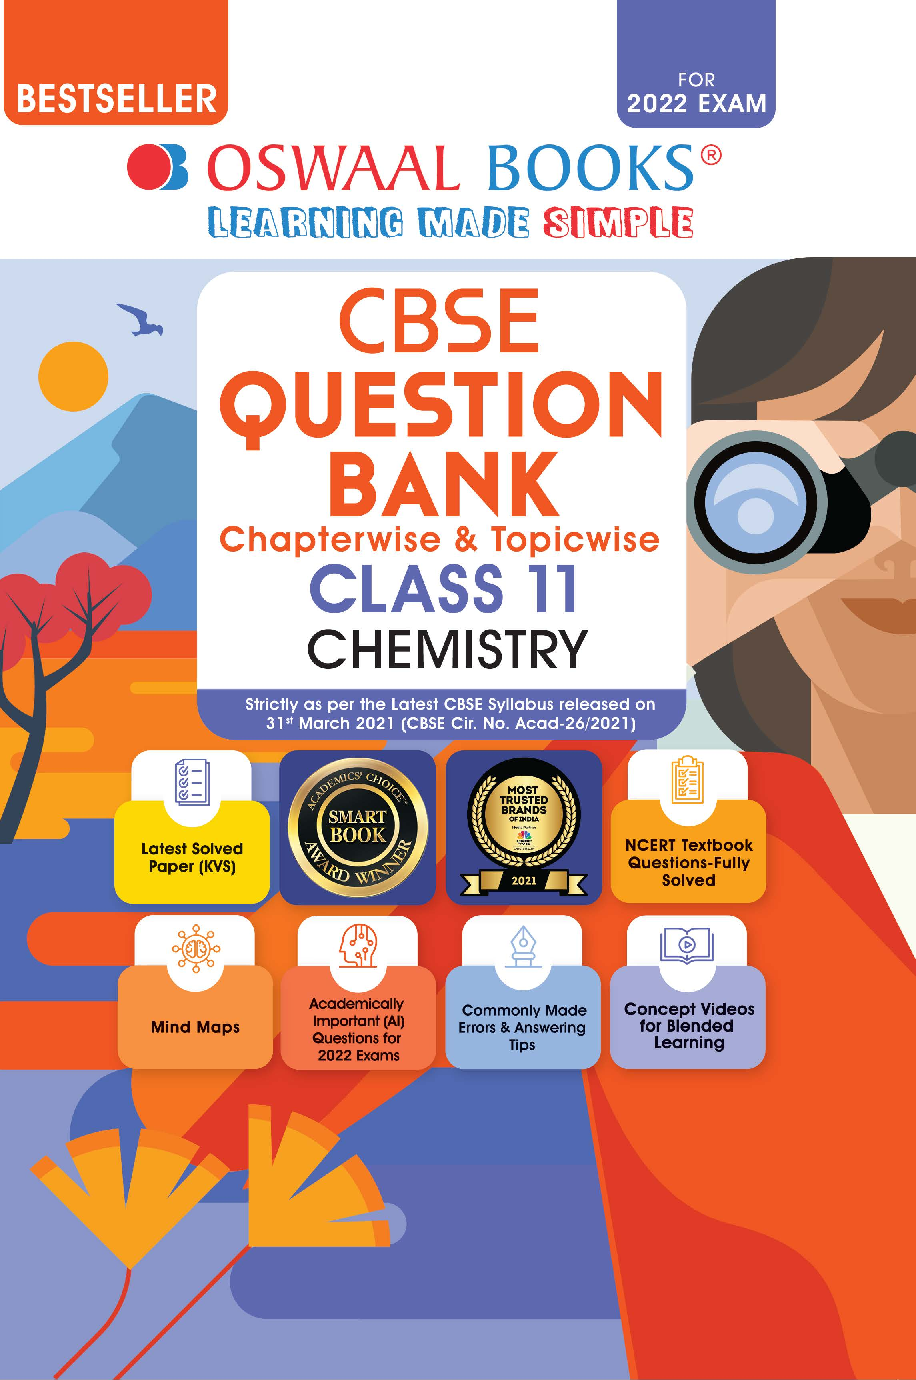 Oswaal CBSE Question Bank Class 11 Chemistry Book Chapterwise & Topicwise (For 2022 Exam) - Page 1